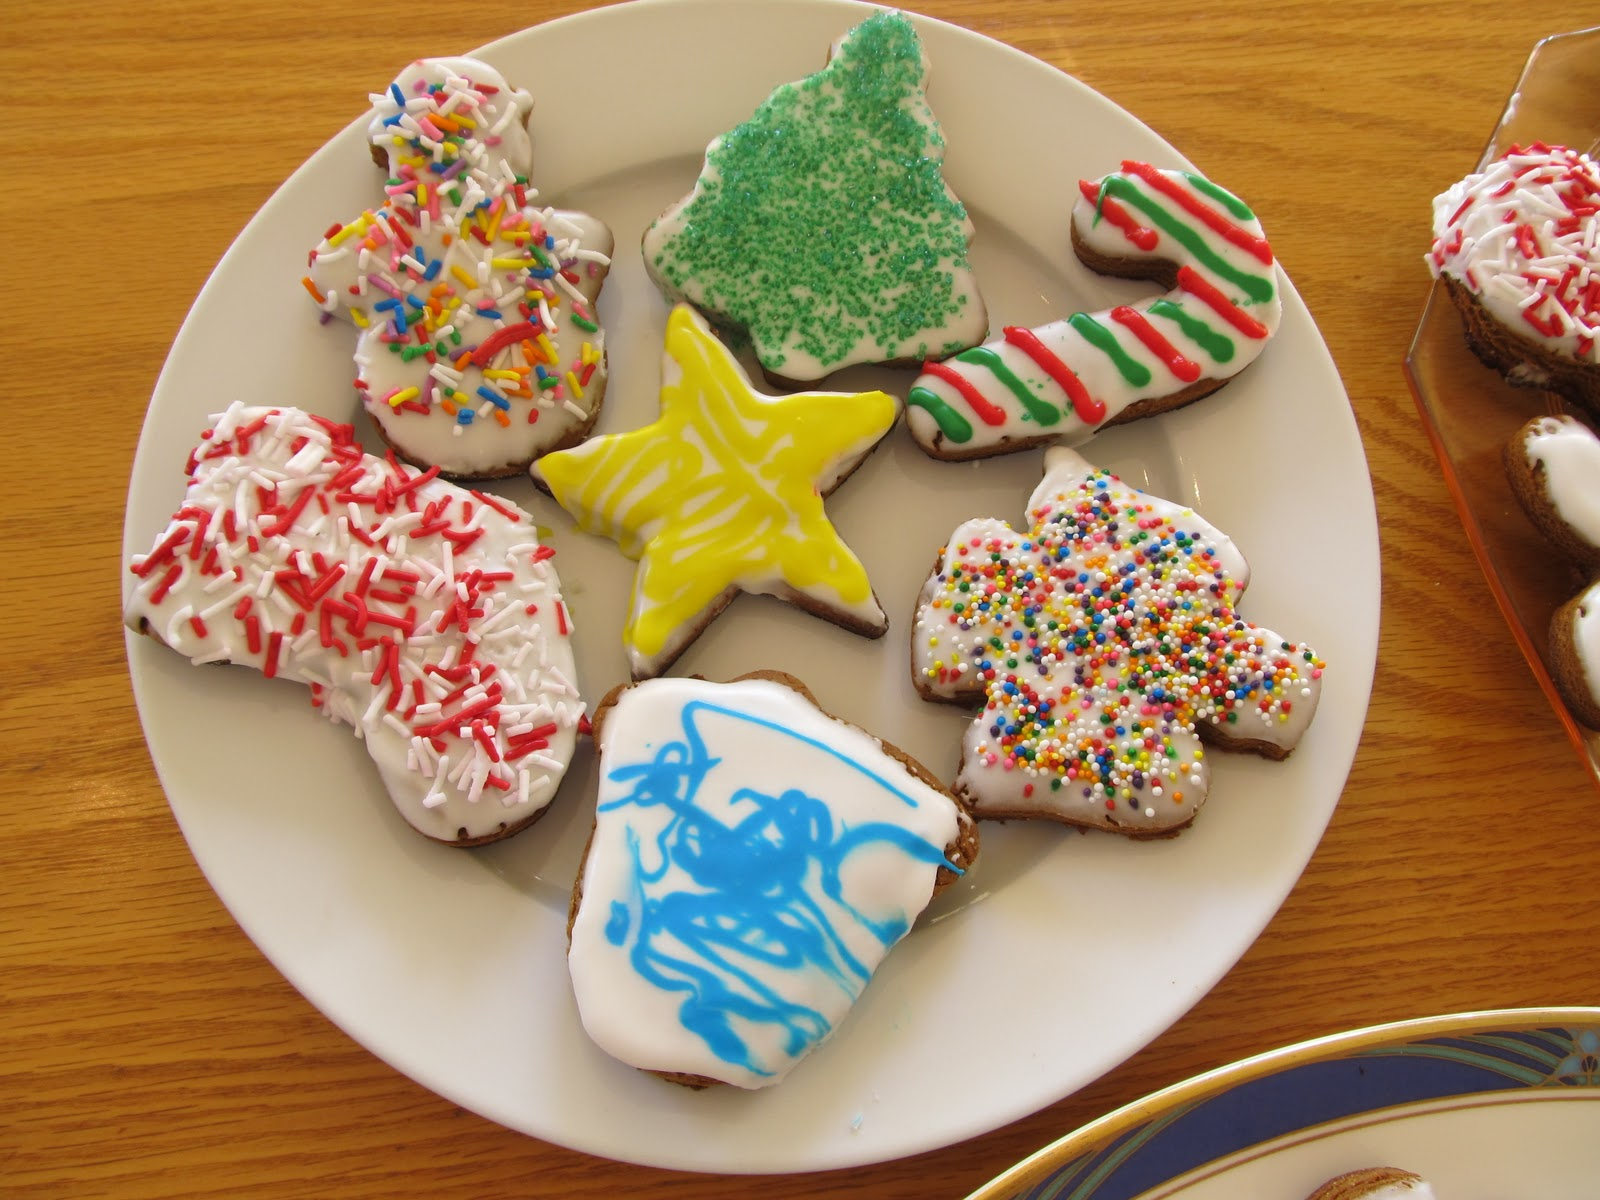 High Park Home Daycare: Royal Icing Makes Kids Cookie Decorating Easy